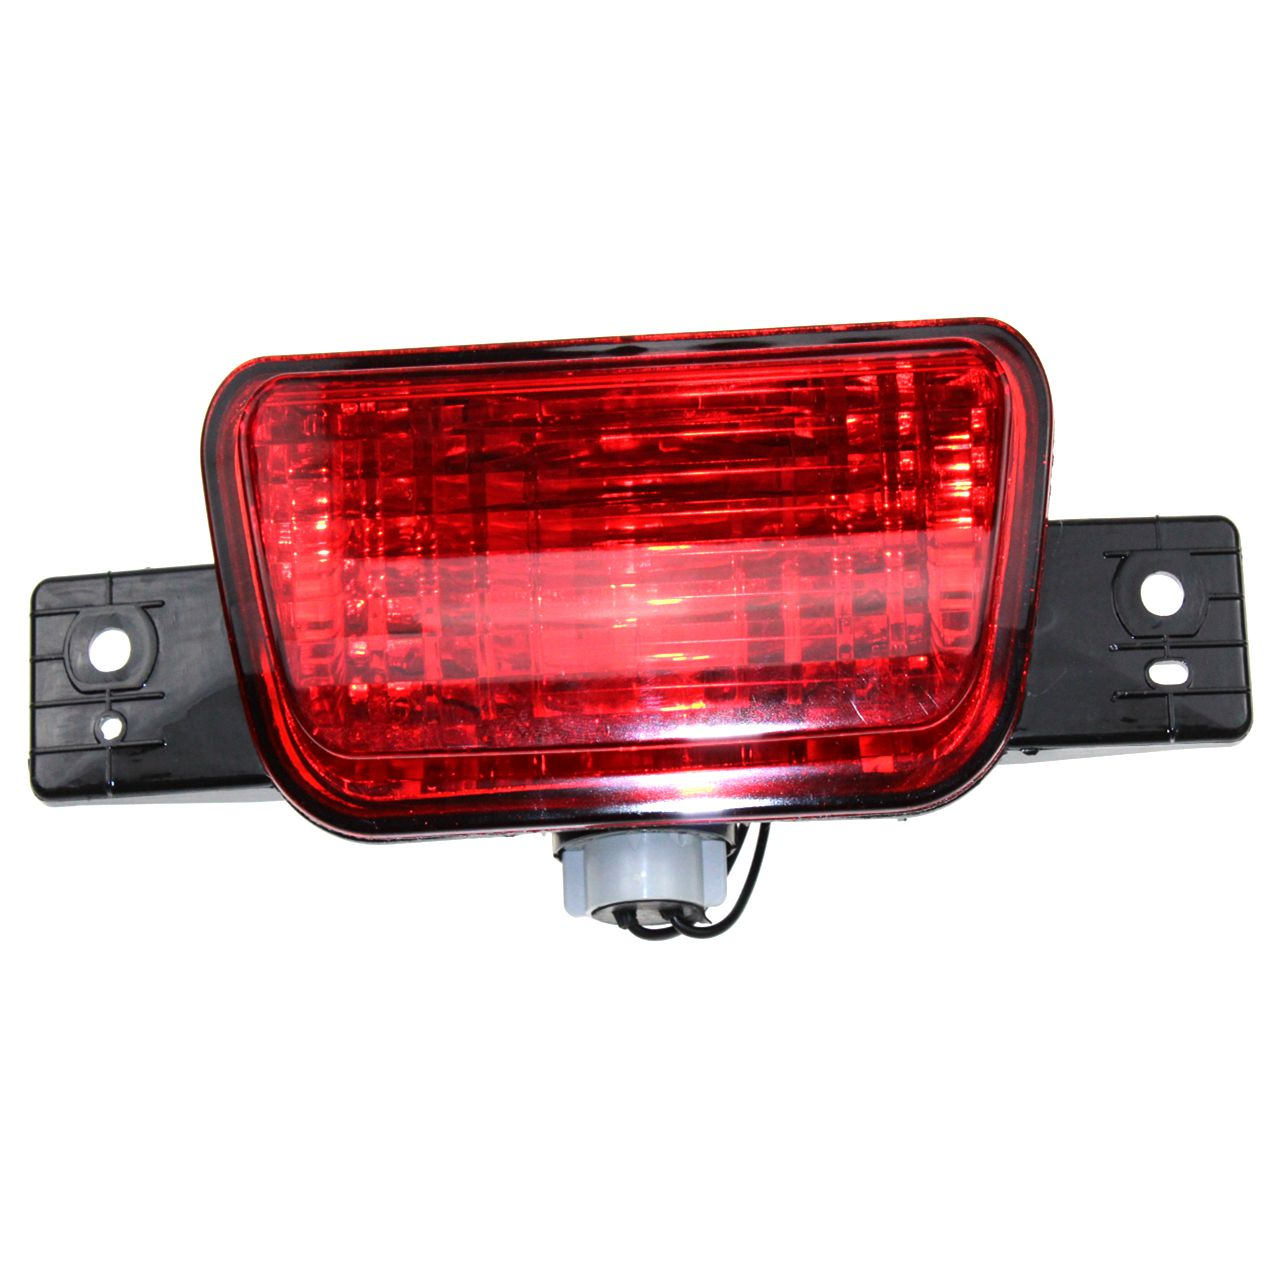 LARBLL New Rear Spare Tire Lamp Tail Bumper Light Fog Lamp 8337A089 for Mitsubishi Pajero Shogun 2007-2015 rear fog lamp spare tire cover tail bumper light fit for mitsubishi pajero shogun v87 v93 v97 2007 2008 2009 2010 2011 2012 2015